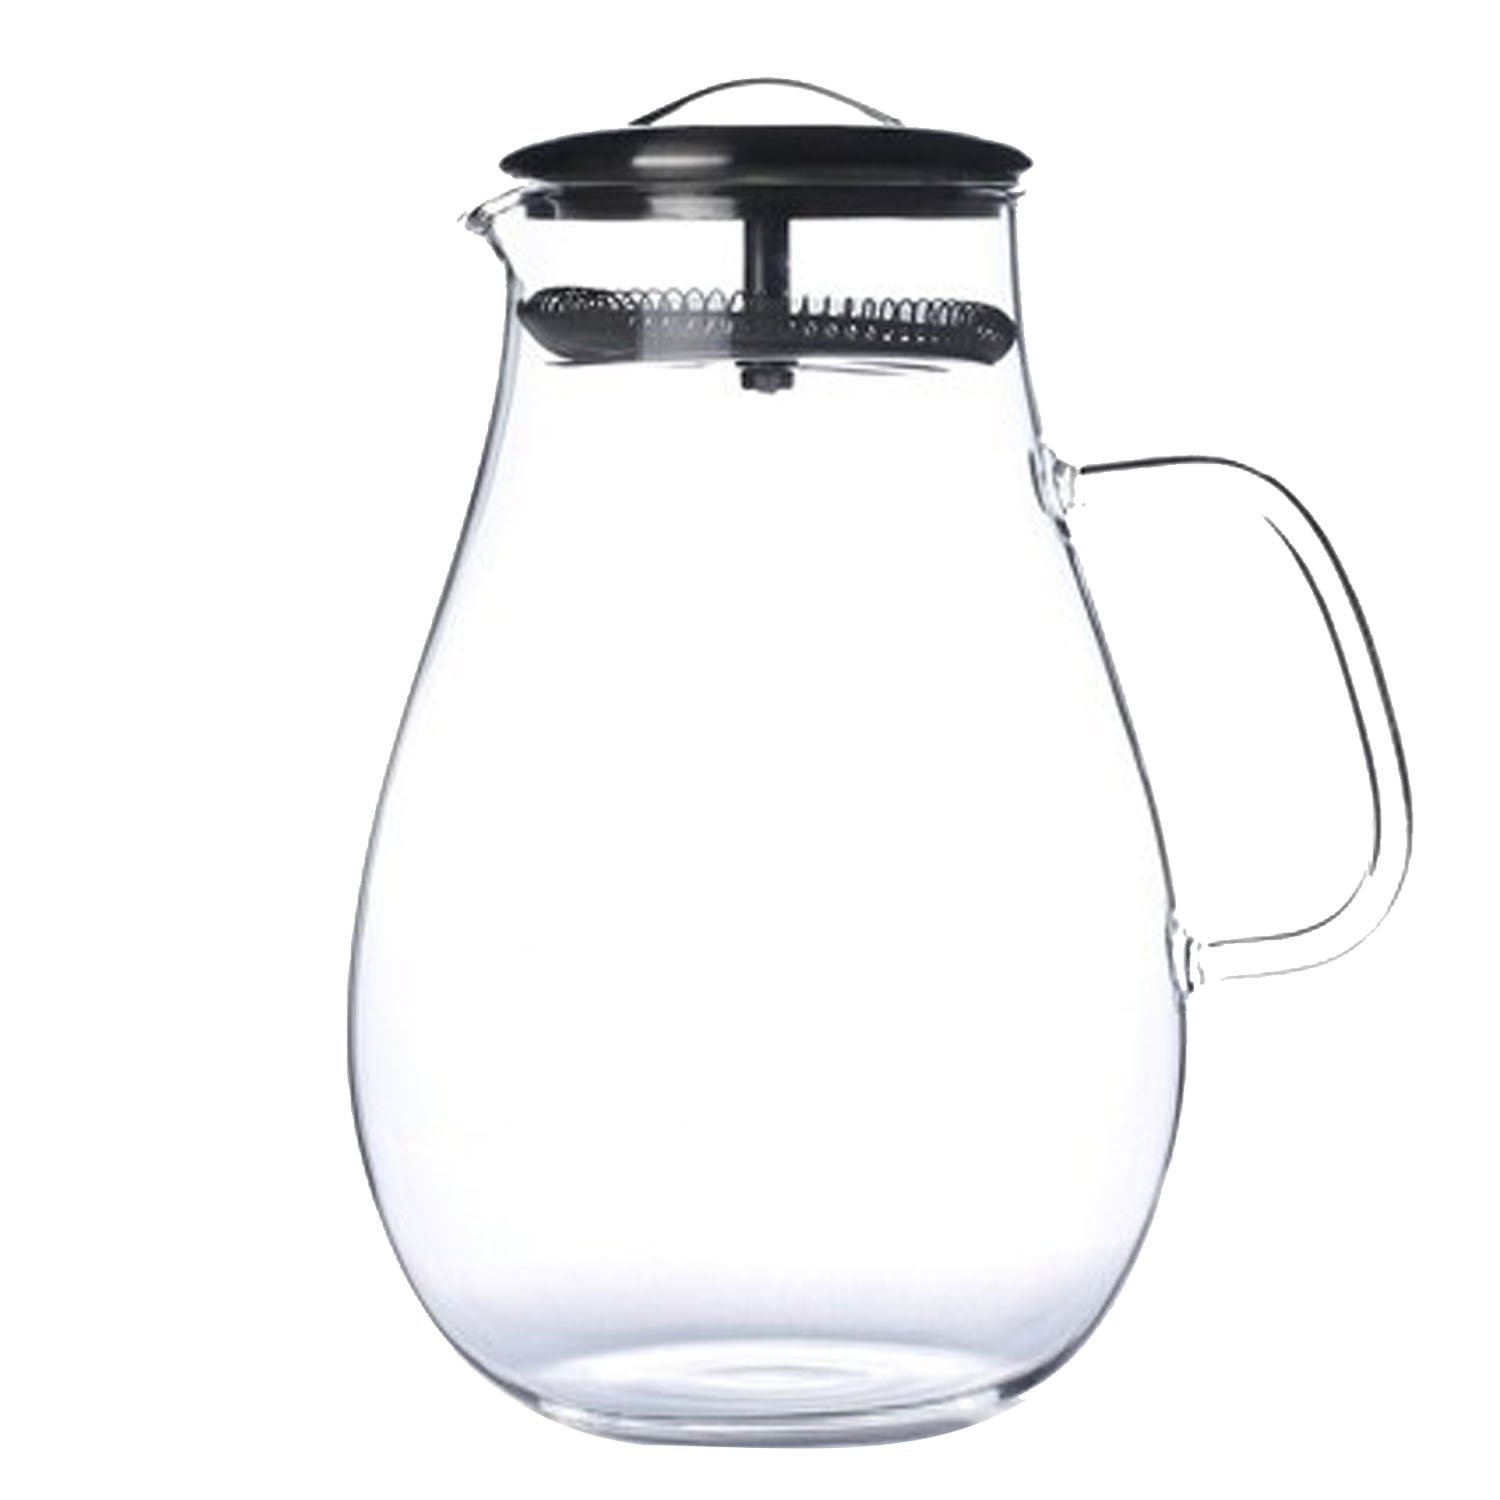 1900ml Large Capacity Glass Pitcher Drink Water Juice Tea Milk Beverage Jug Pitcher Bottle with Filter Stainless Steel Lid for Homemade Juice Iced Tea Gosear